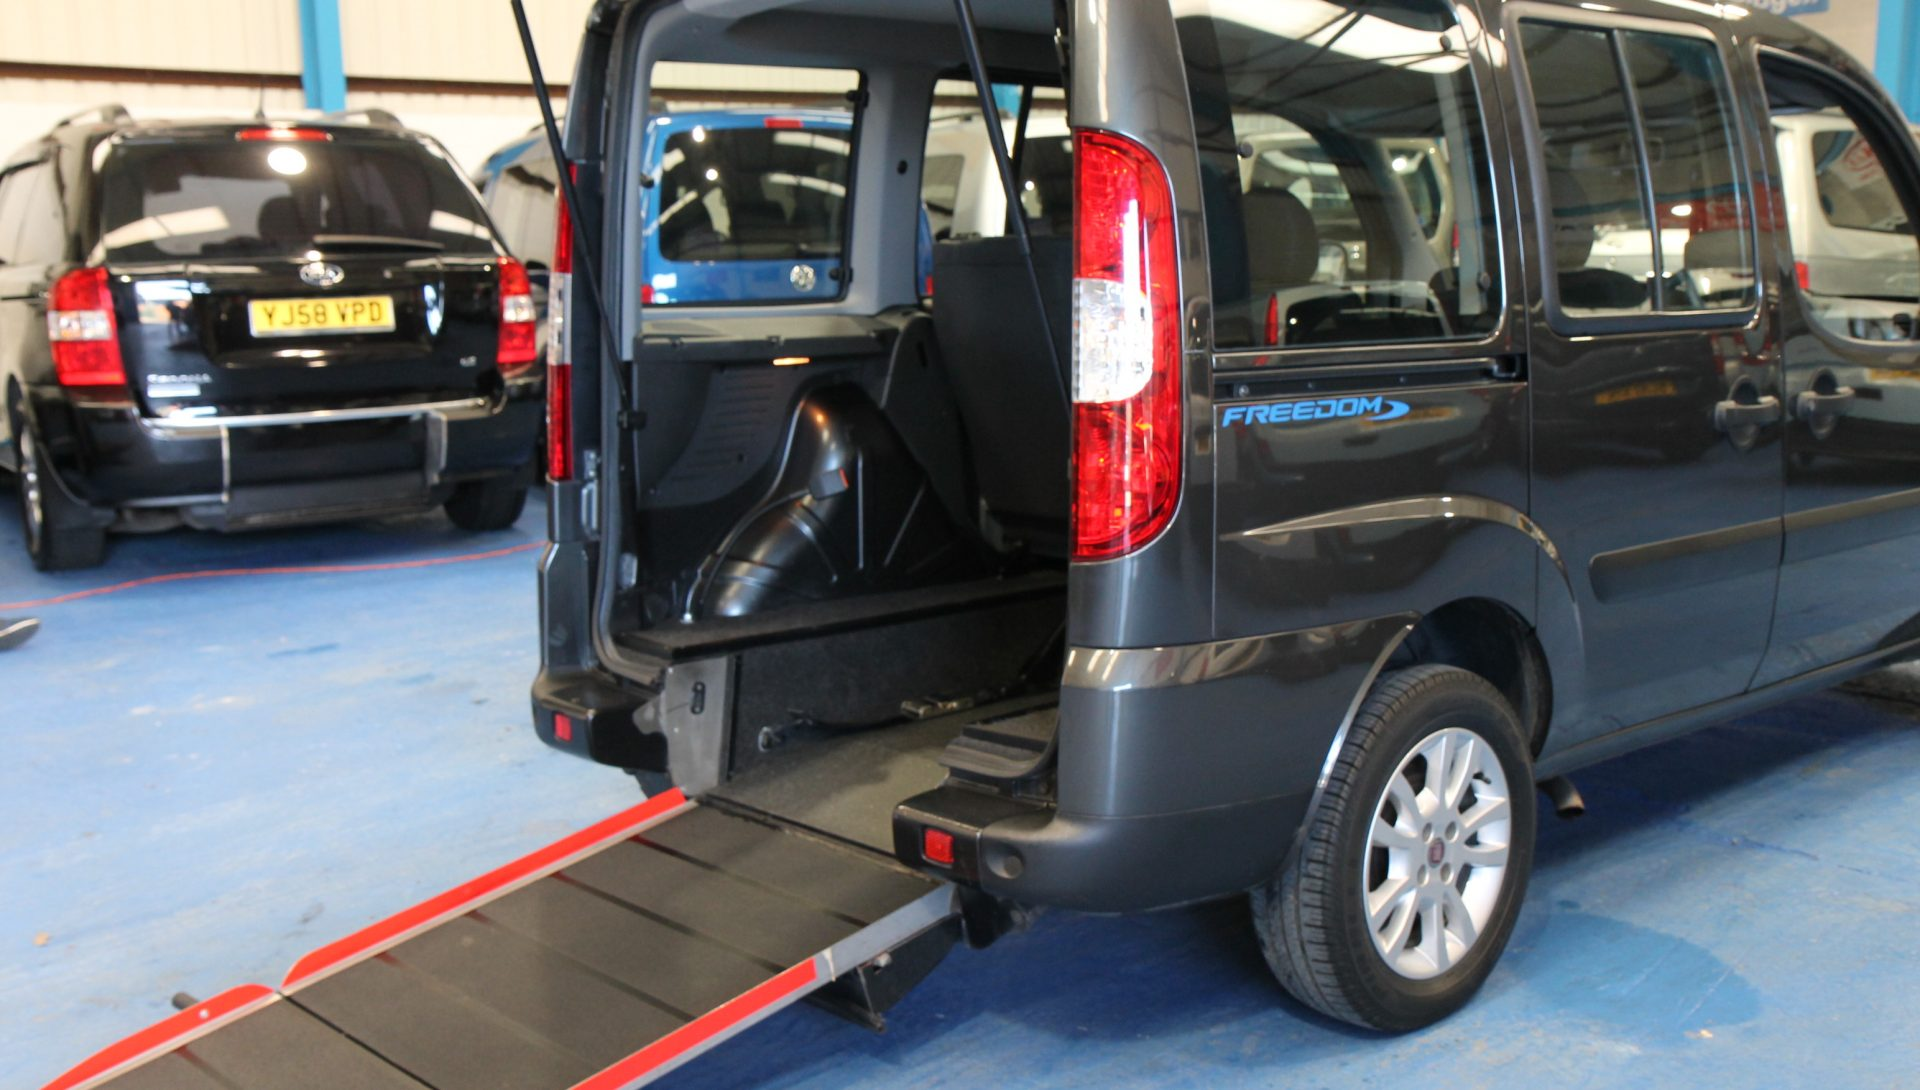 doblo wheelchair access vehicle yy59kze wheelchair accessible vehicles. Black Bedroom Furniture Sets. Home Design Ideas